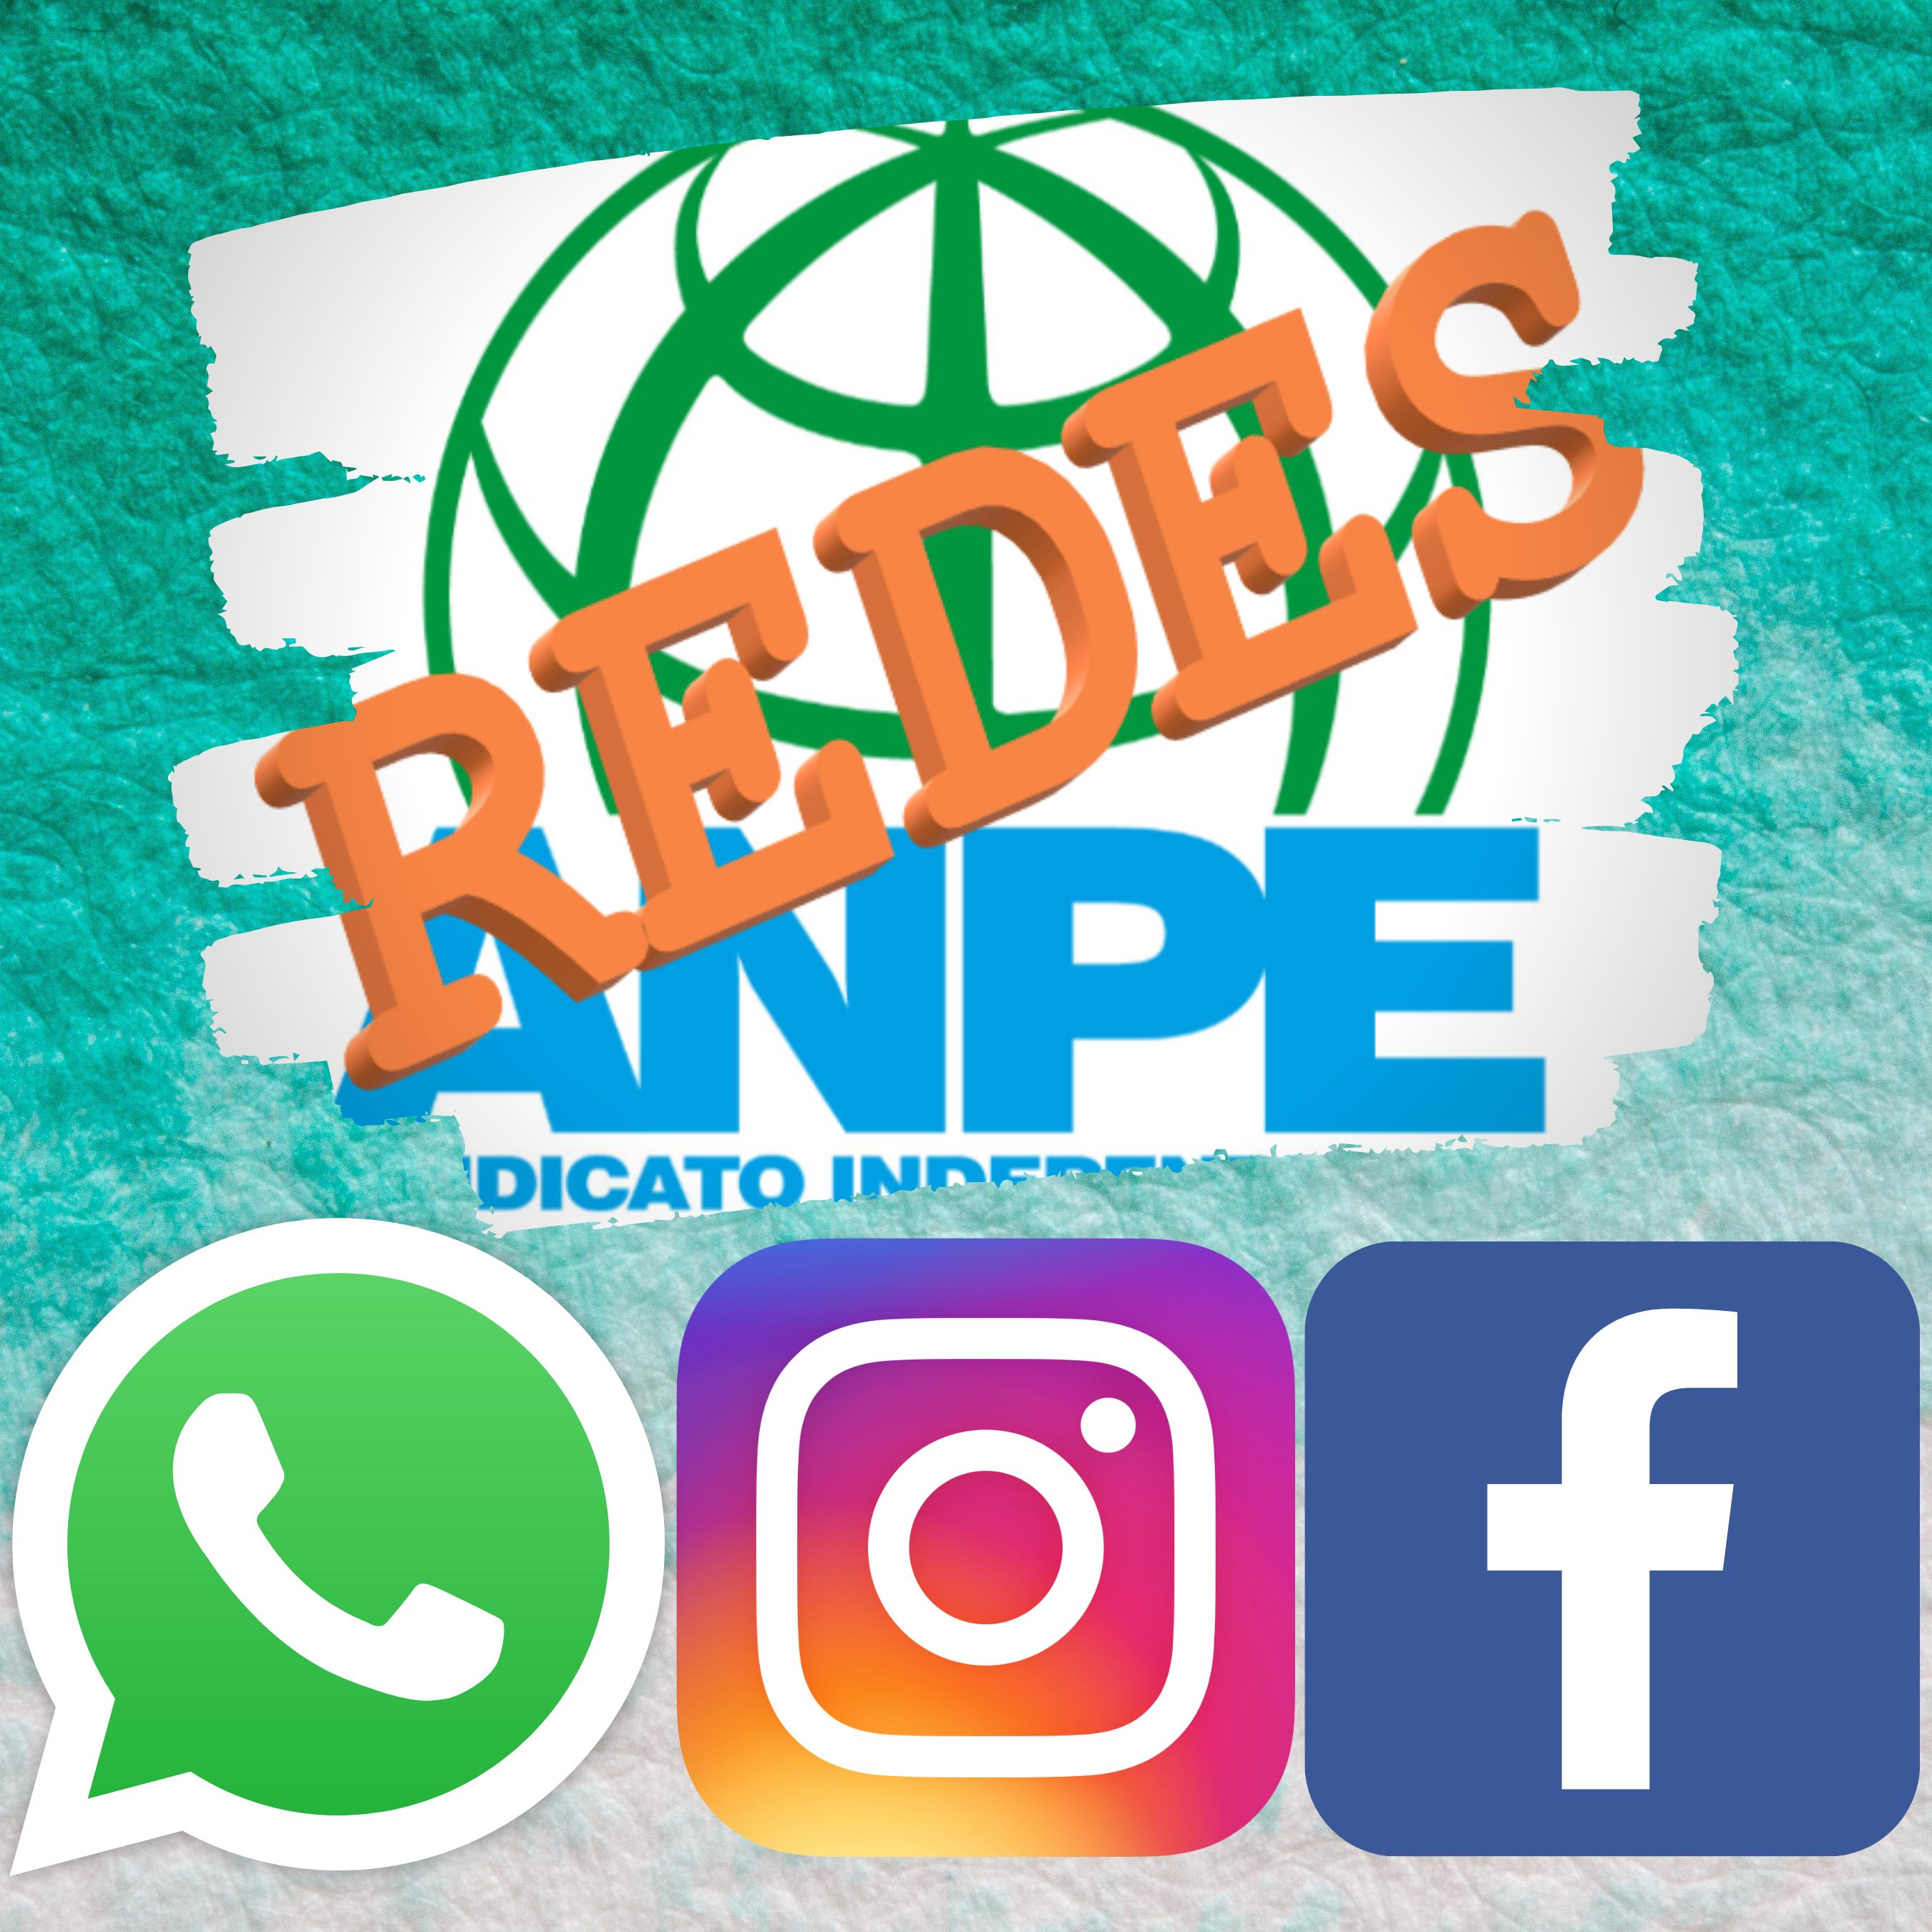 anpe-redes-wh-ig-fb